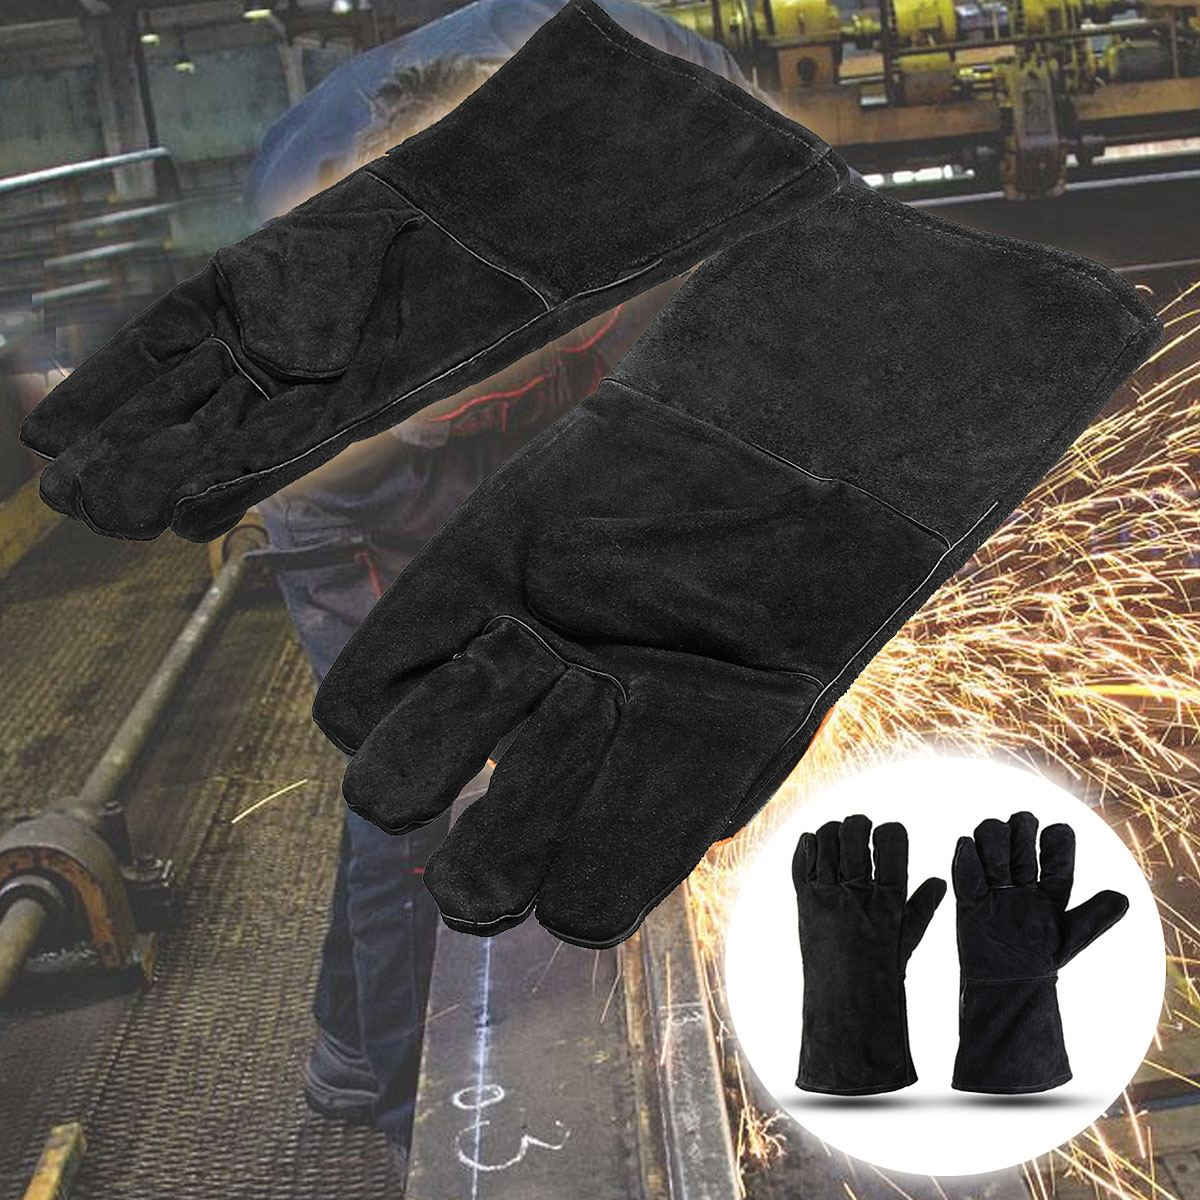 32cm XL Black Heavy   Welding Gloves Stoves Protect for Fire Log Wood Welder Hands Workplace Safety Glove Fireplace32cm XL Black Heavy   Welding Gloves Stoves Protect for Fire Log Wood Welder Hands Workplace Safety Glove Fireplace